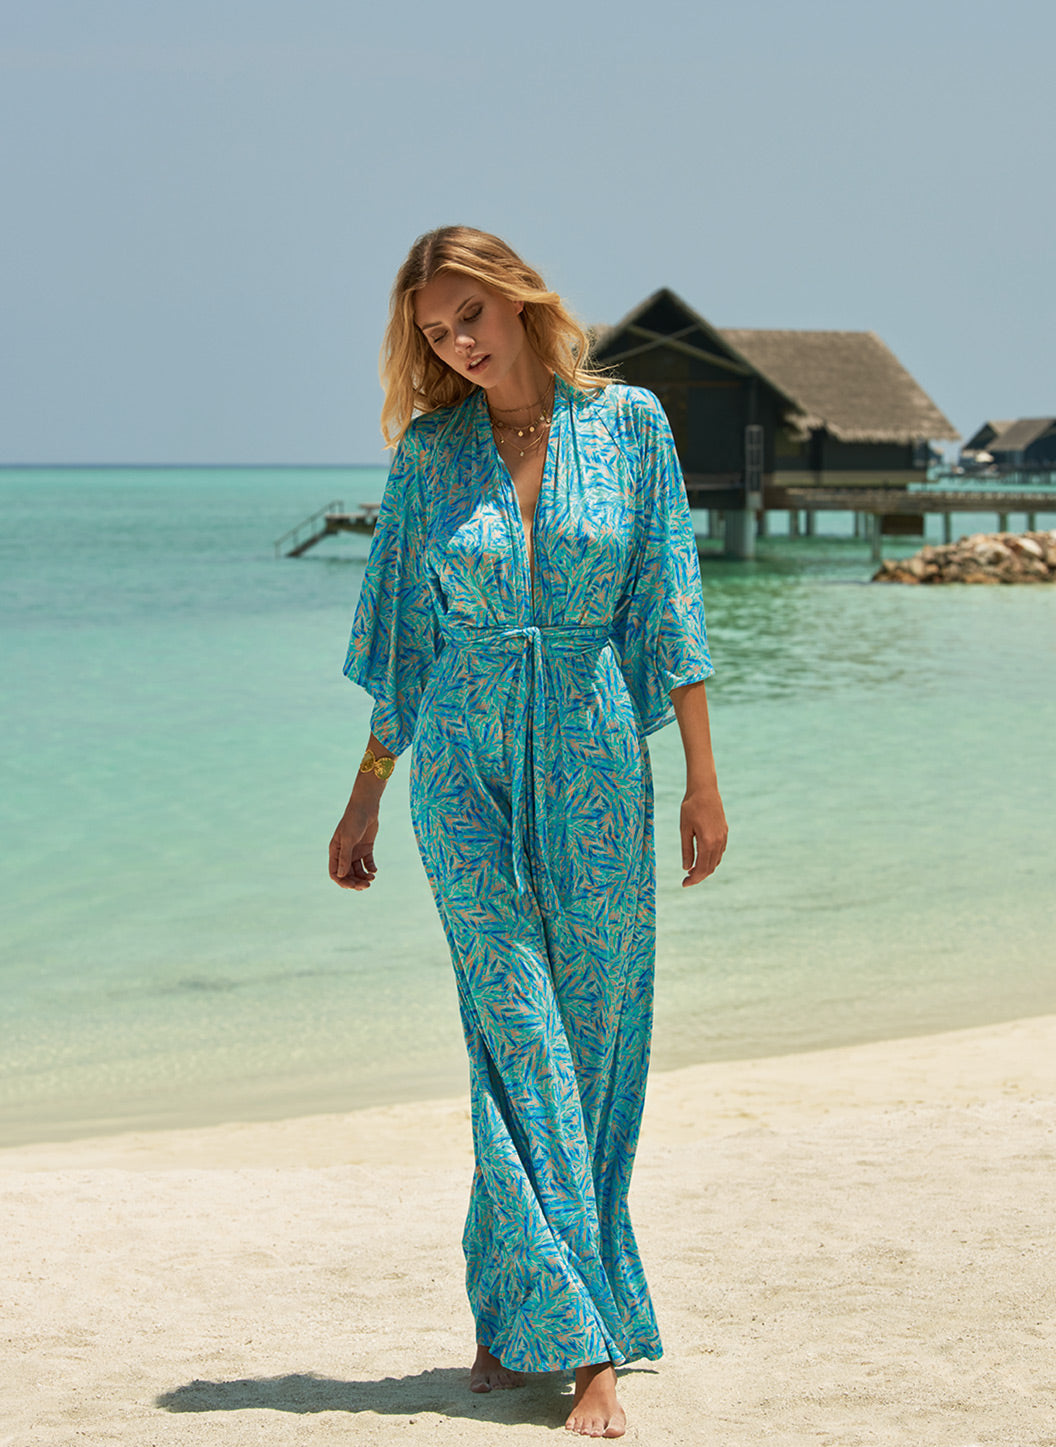 Annaelle Blue Leaf Long Sleeve Belted Maxi Dress - Melissa Odabash Beachwear